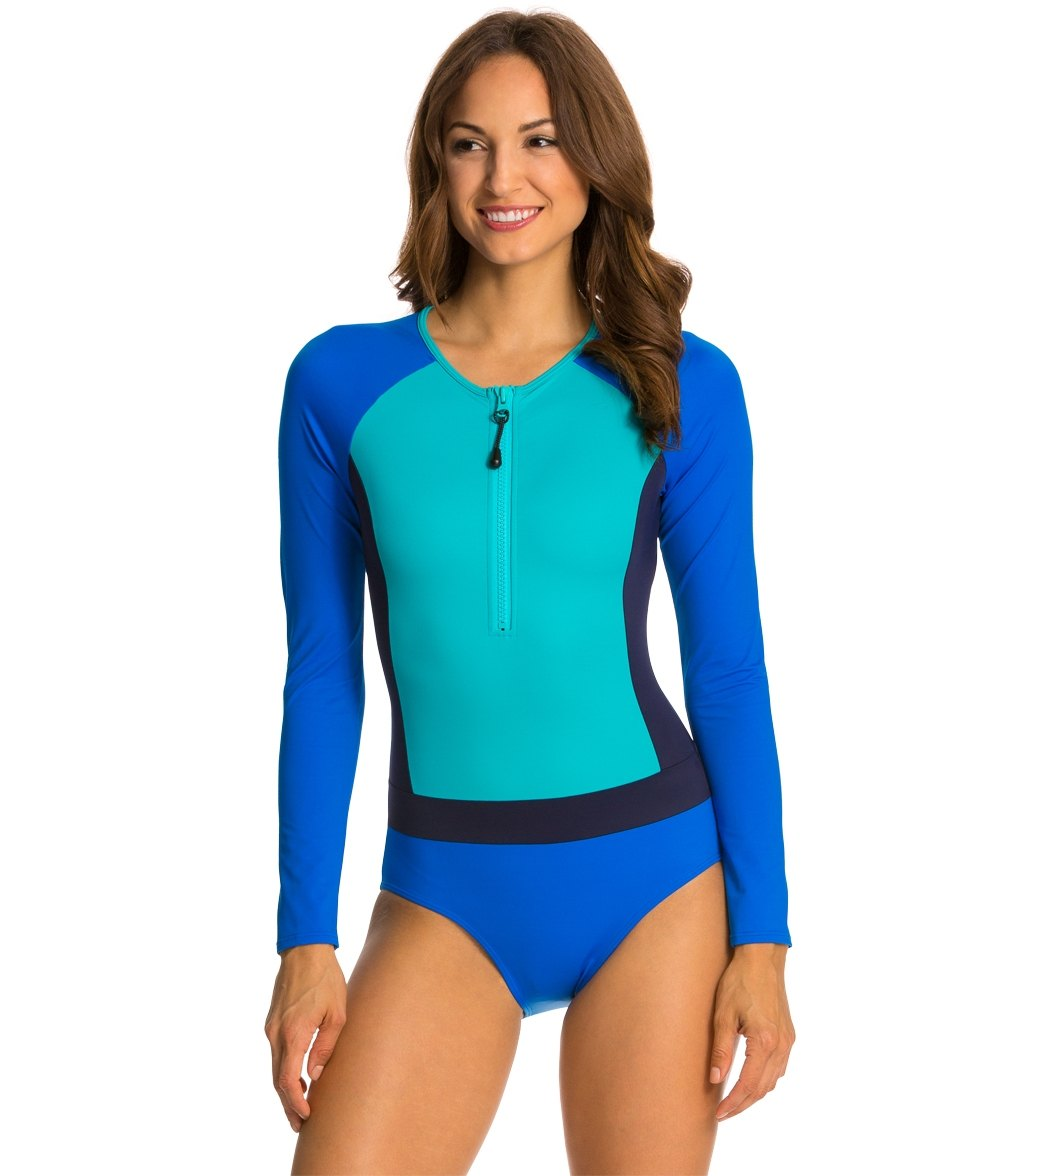 50b5af008c1f1 Spanx Color Block Long Sleeve One Piece Swimsuit at SwimOutlet ...